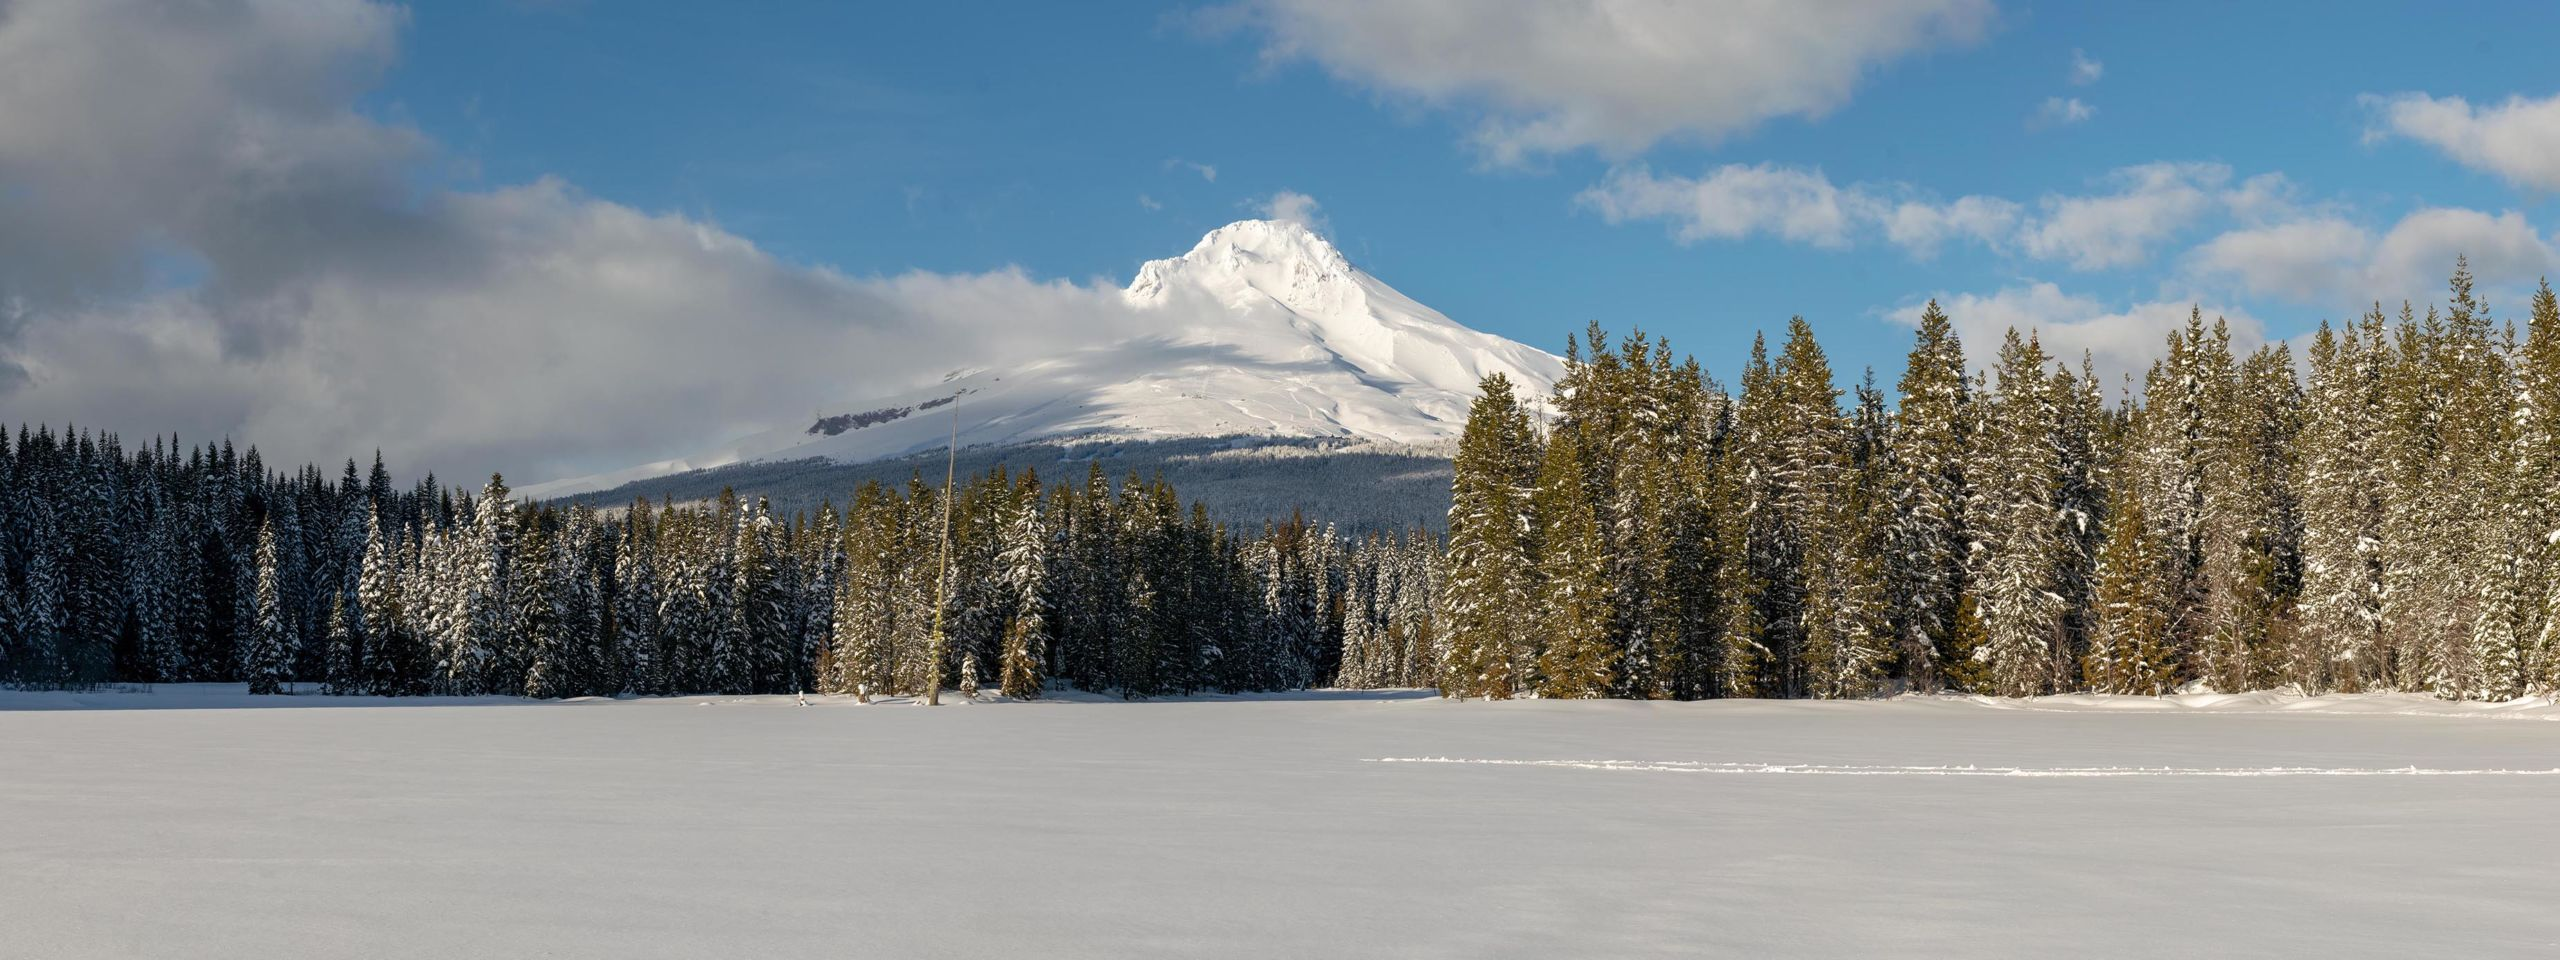 Wide angle panorama of snow covered mount hood taken from the center of lake Trillium.